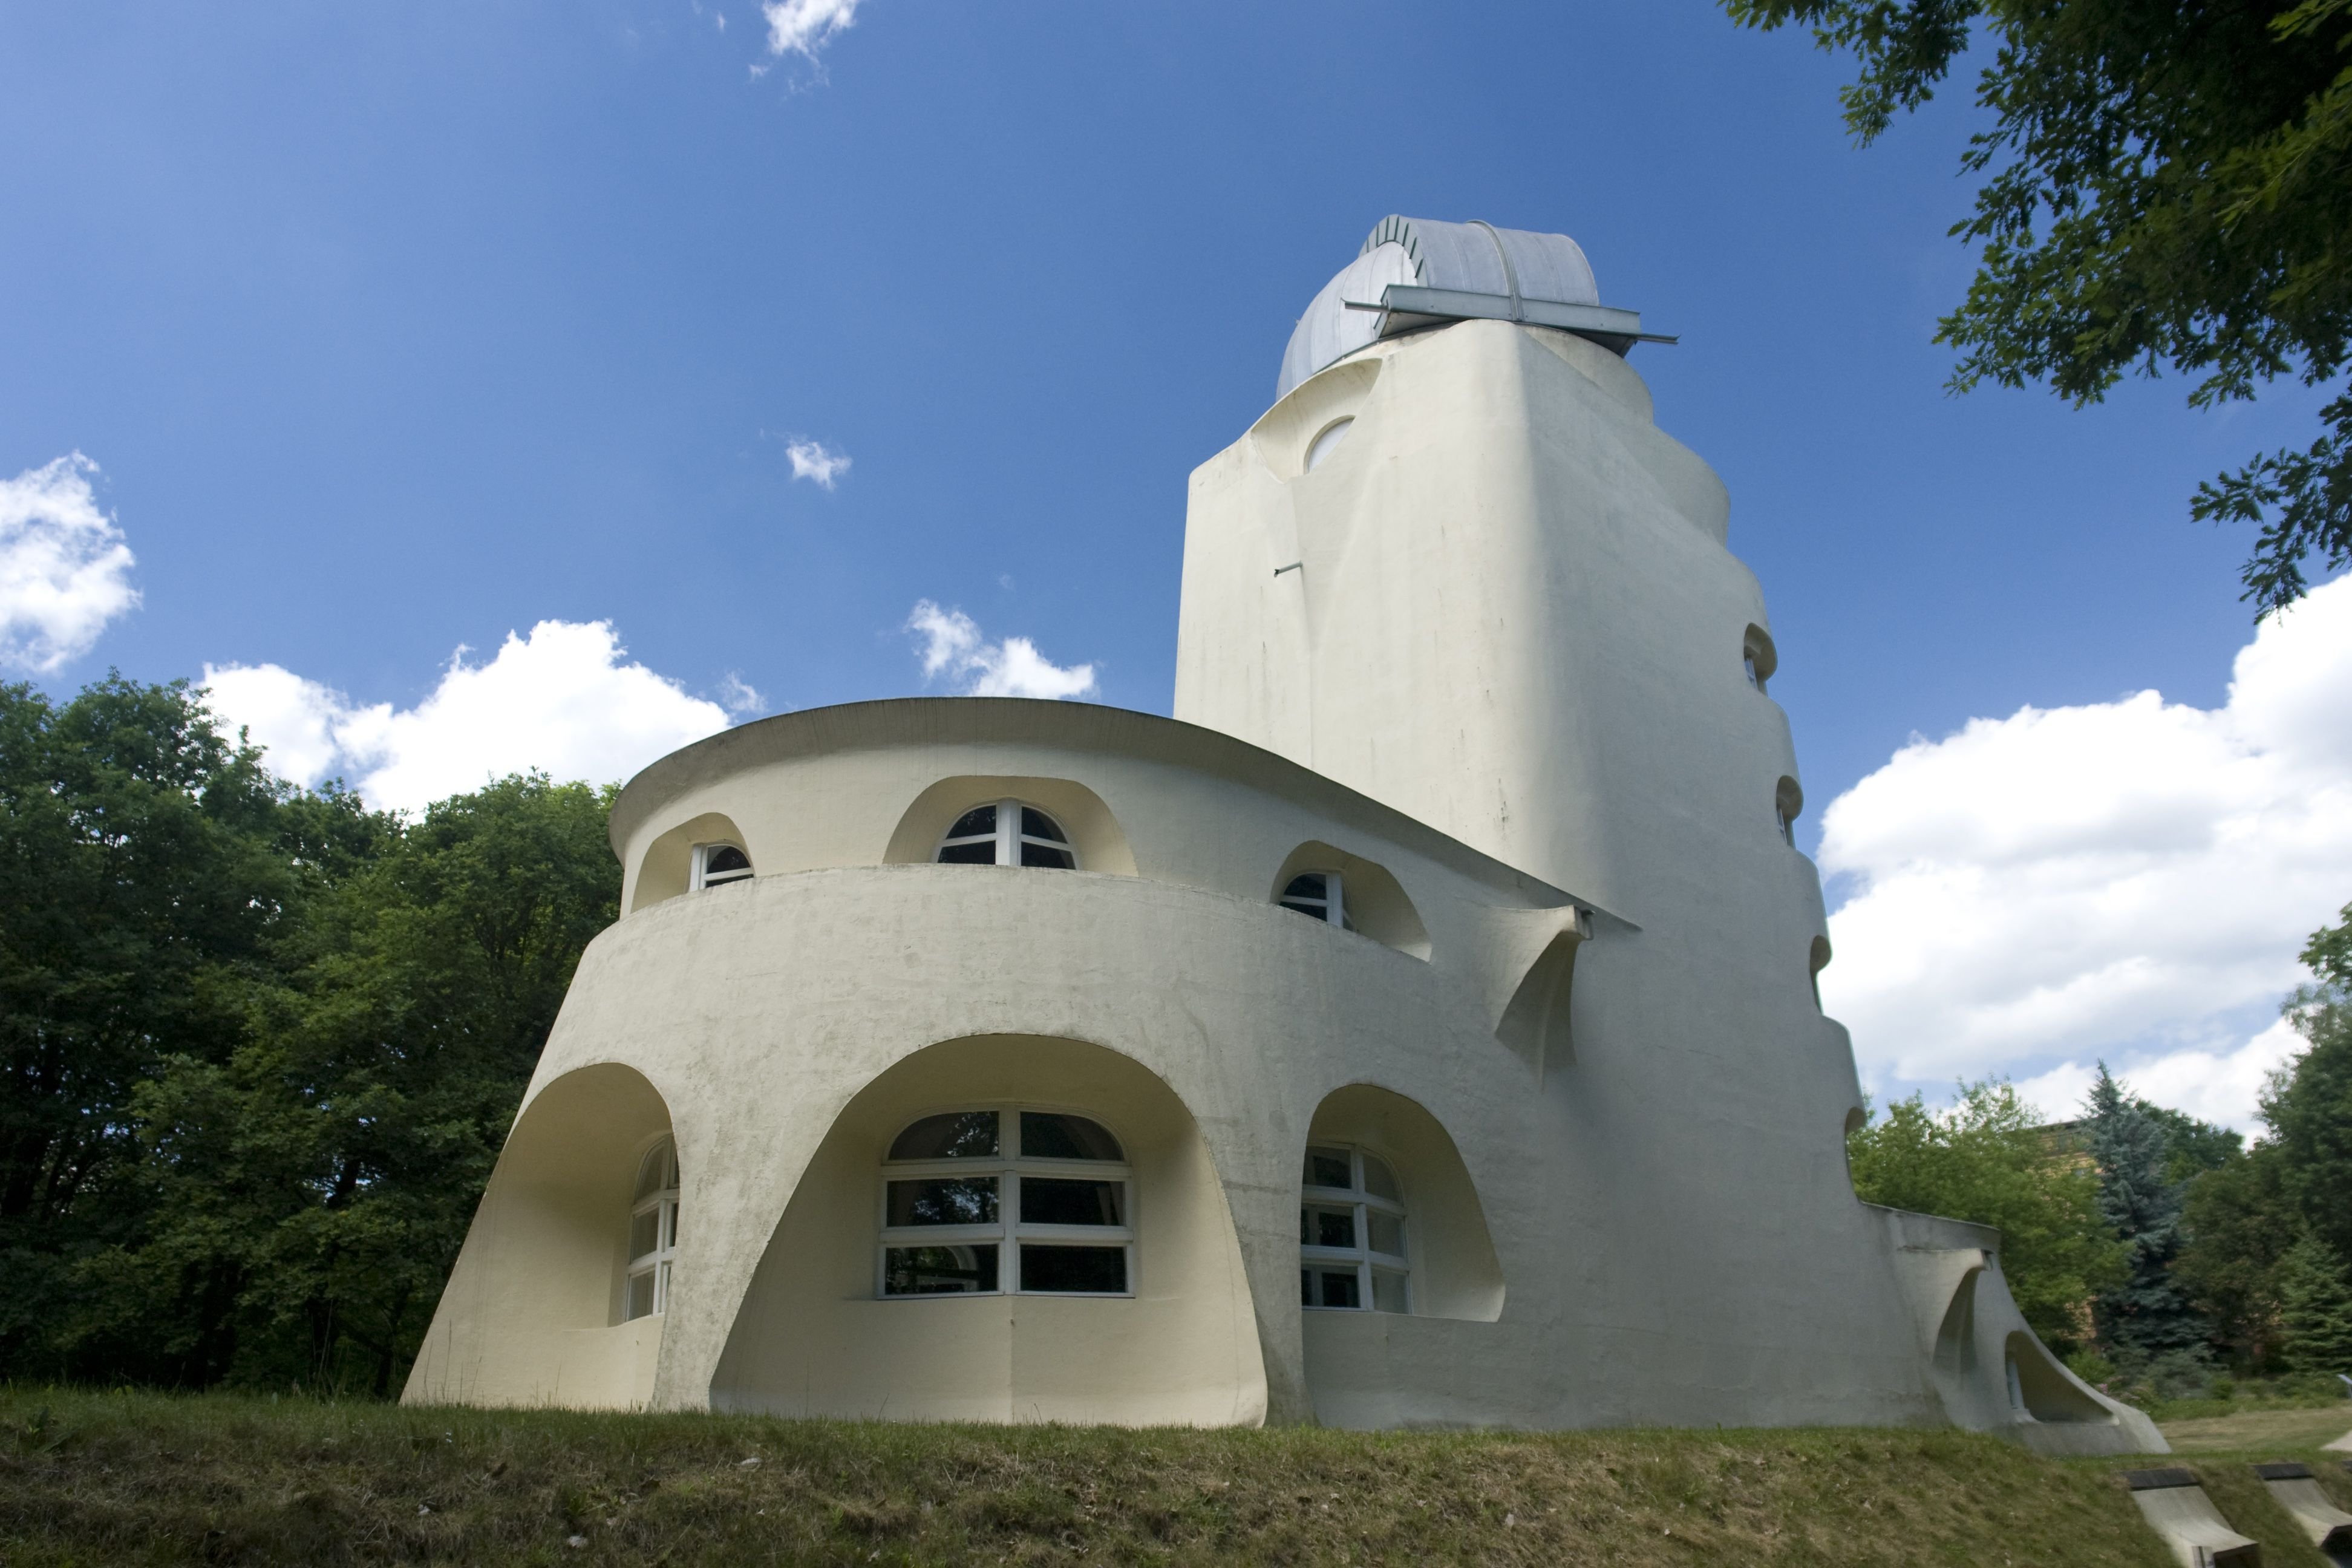 white, curvy 1 1/2 stoy building with arched curvy windows and attached tower